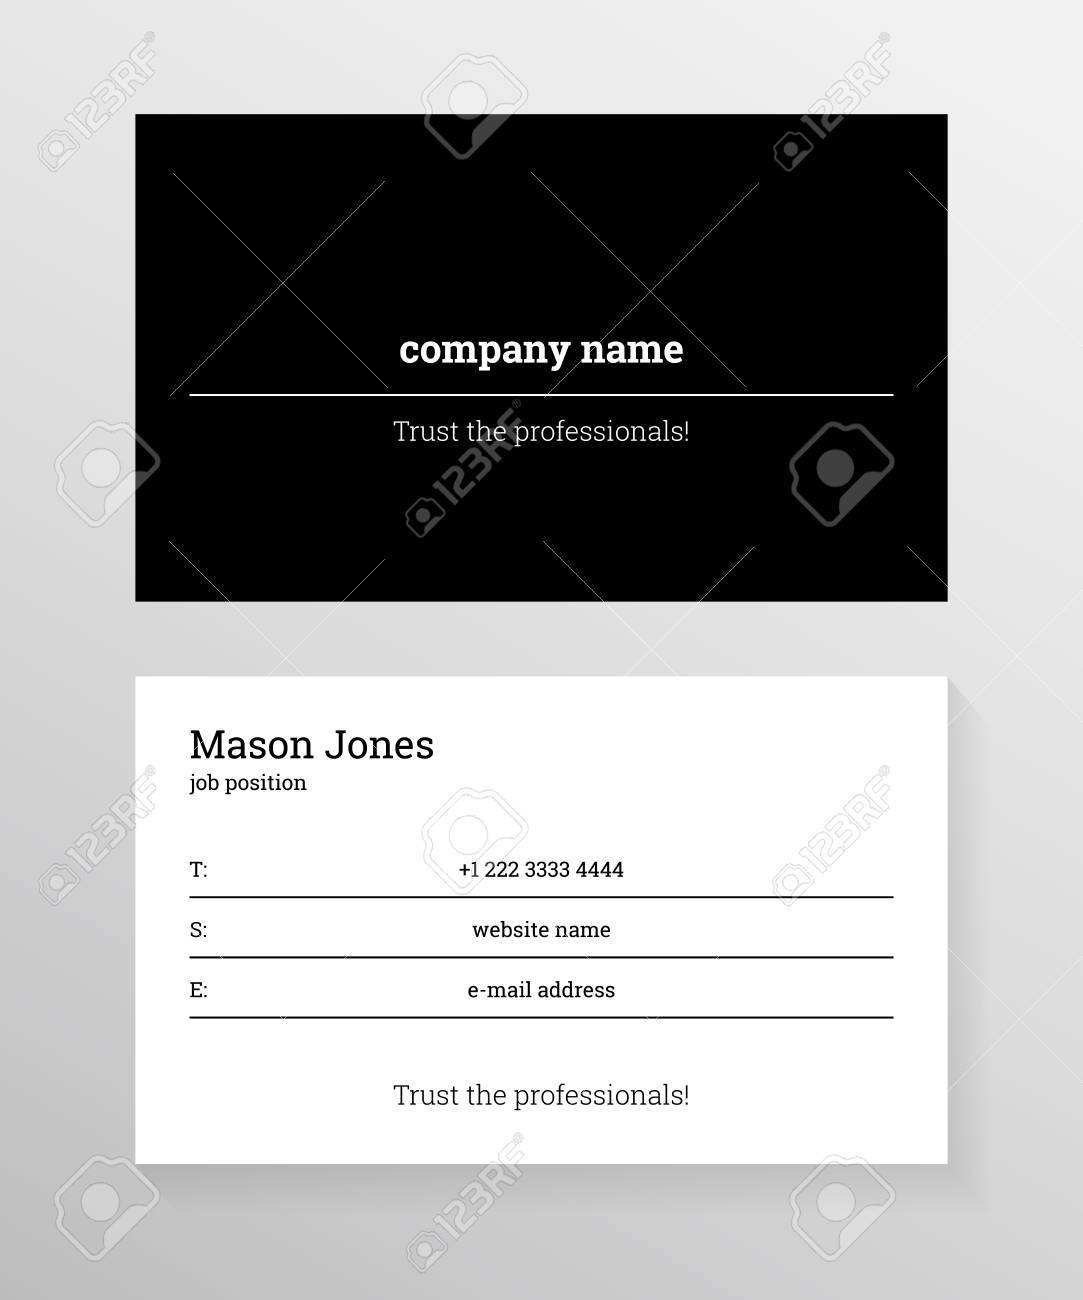 Double sided business card template information on the black double sided business card template information on the black lines on white background cheaphphosting Gallery